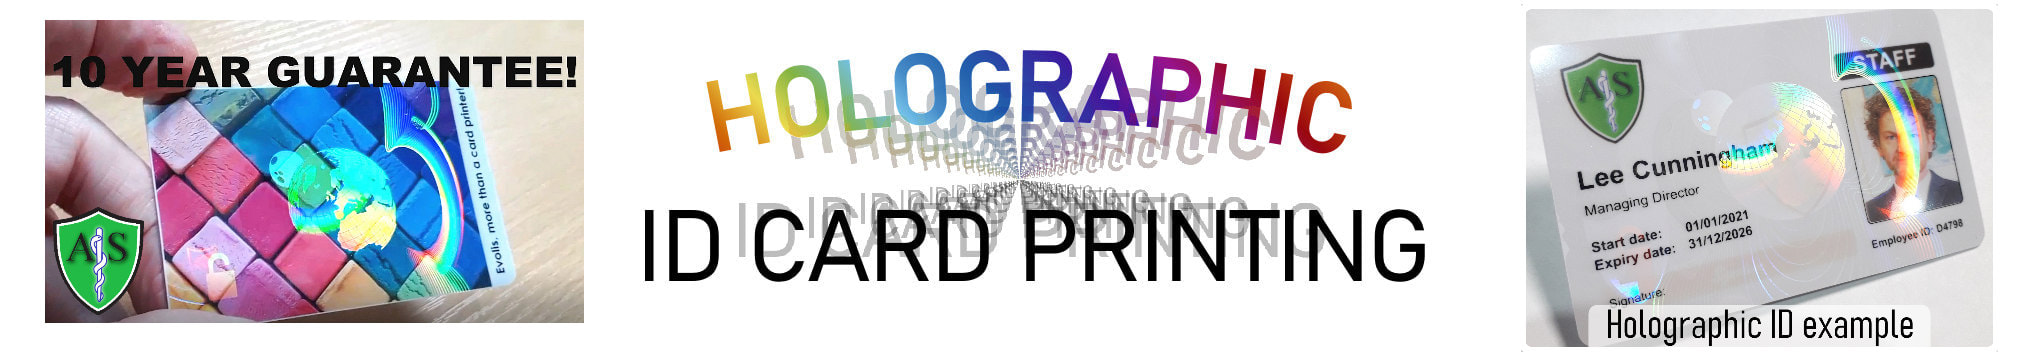 Hull, Kingston-upon-Hull holographic ID card print service. Employee Identity cards with hologram or holograph security mark.